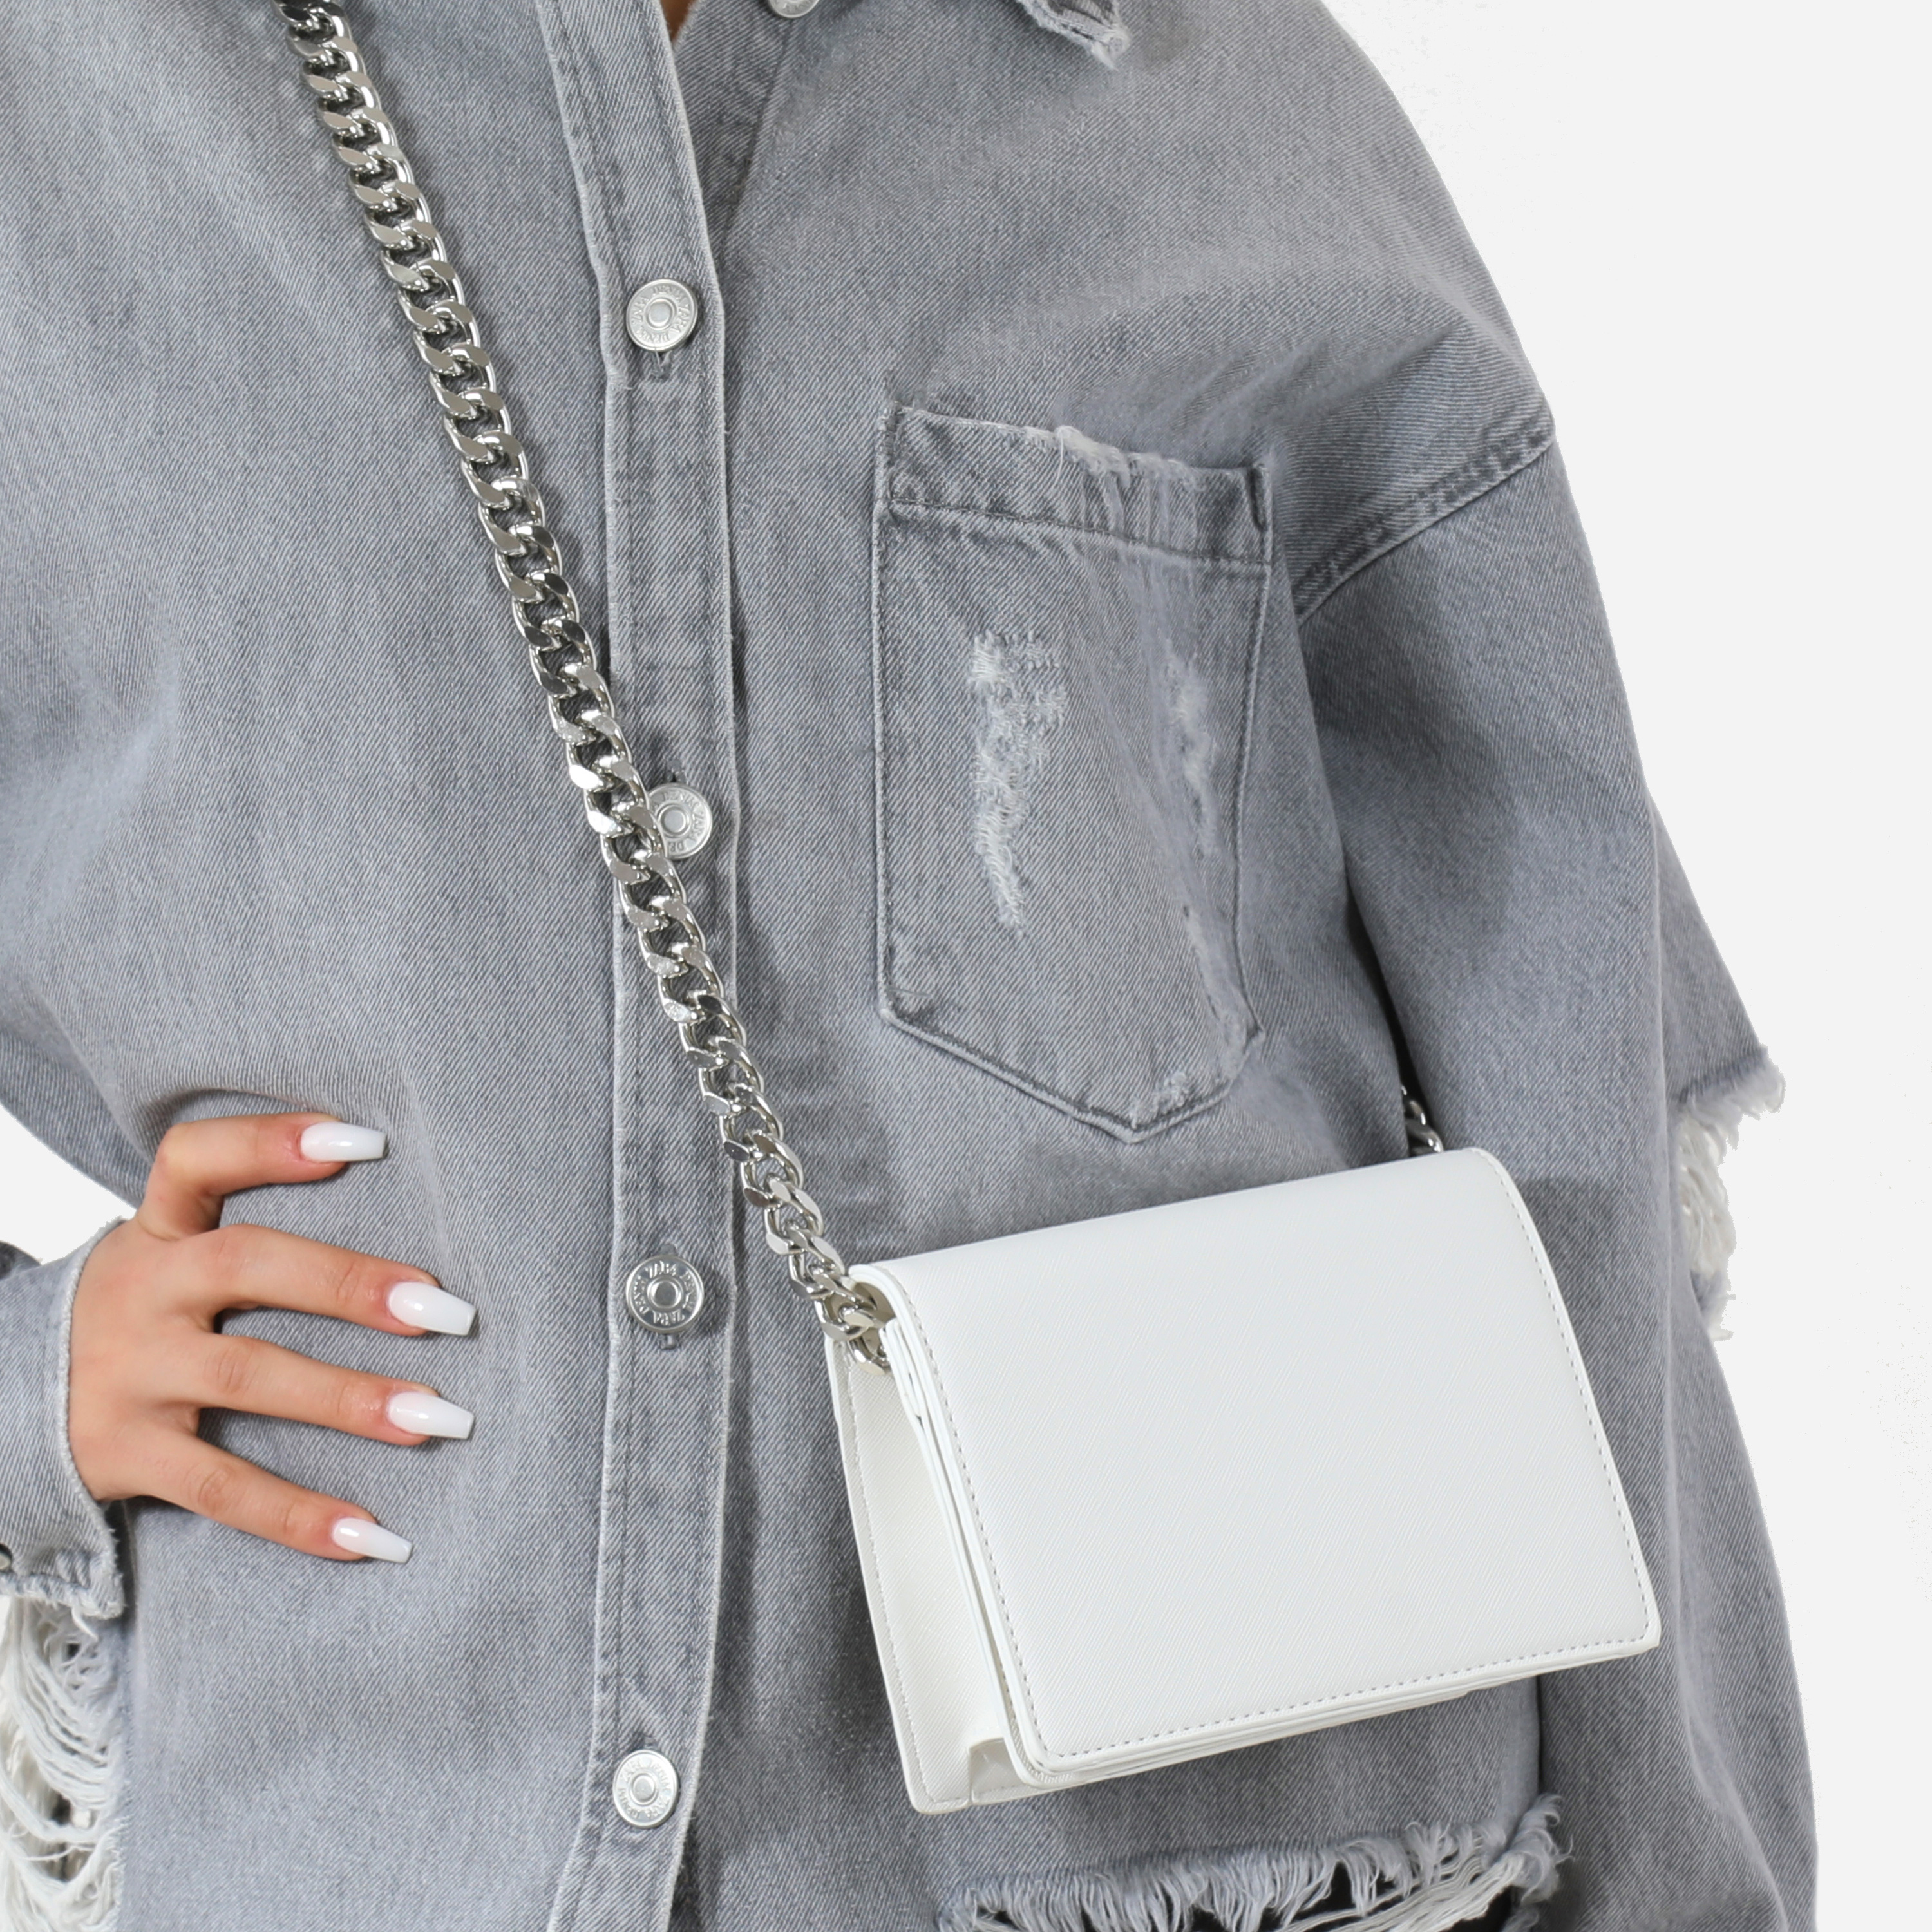 Oversized Chain Cross Body Bag In White Faux Leather